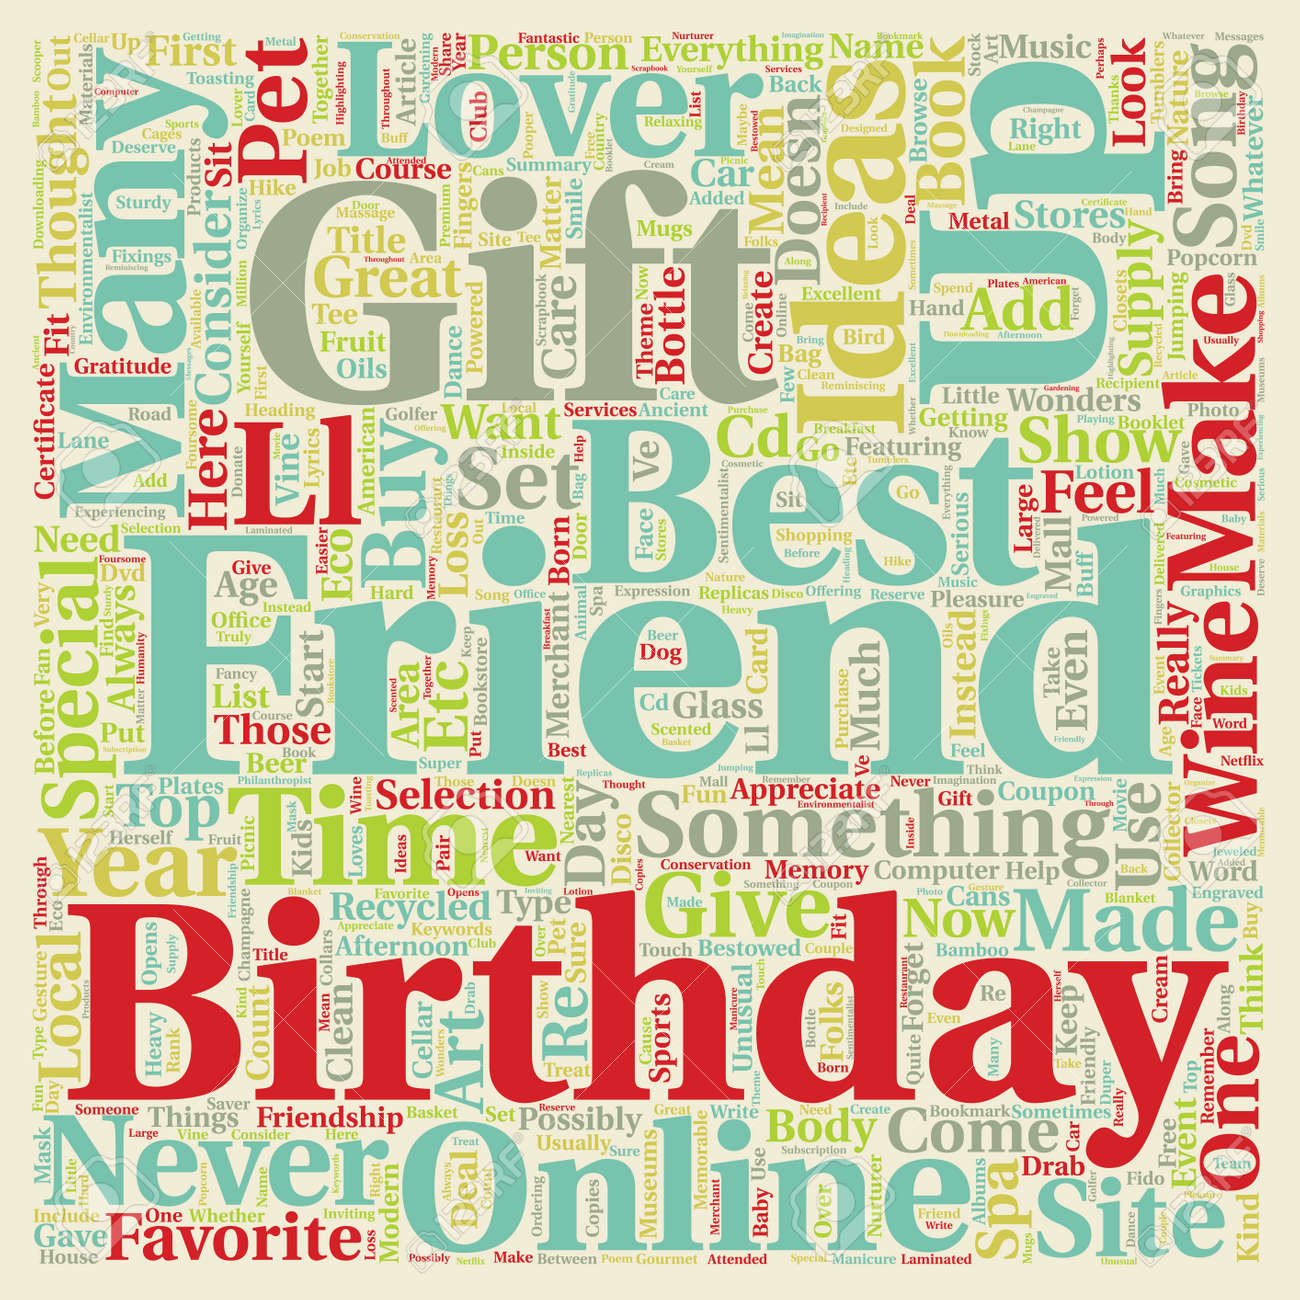 Best Friend Birthday Gift Ideas Text Background Wordcloud Concept Stock Vector